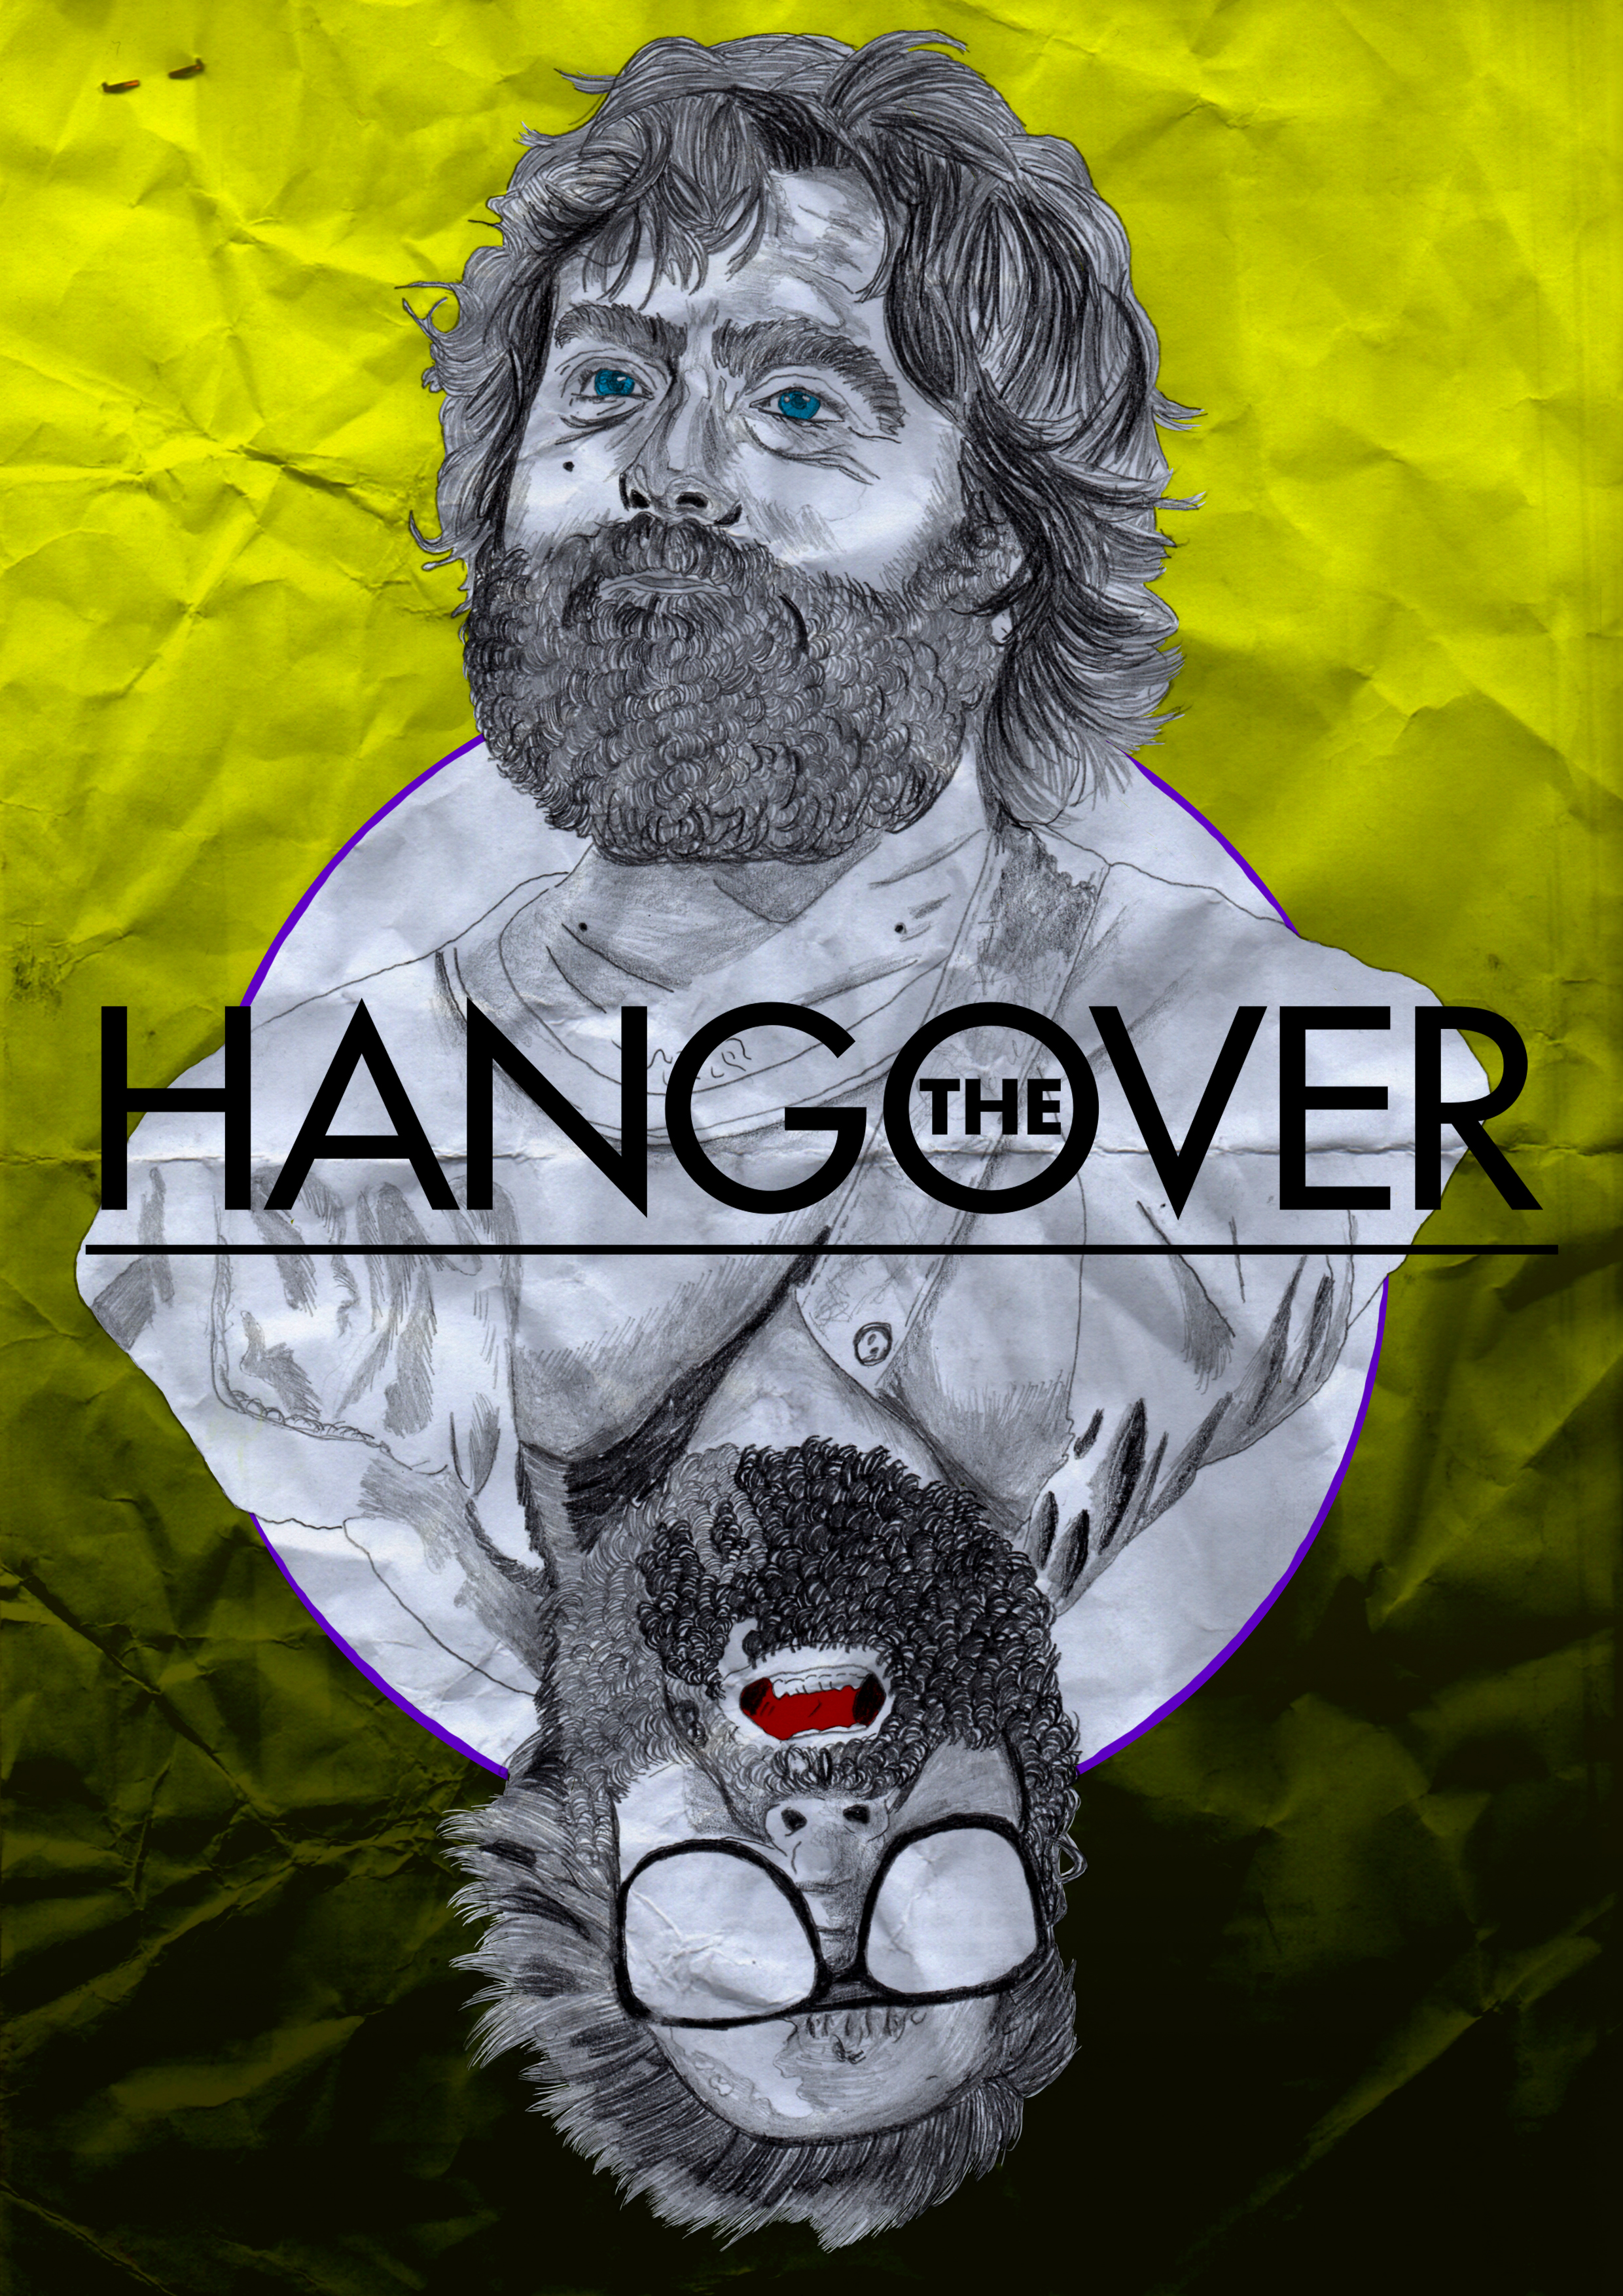 The Hangover. Poster.